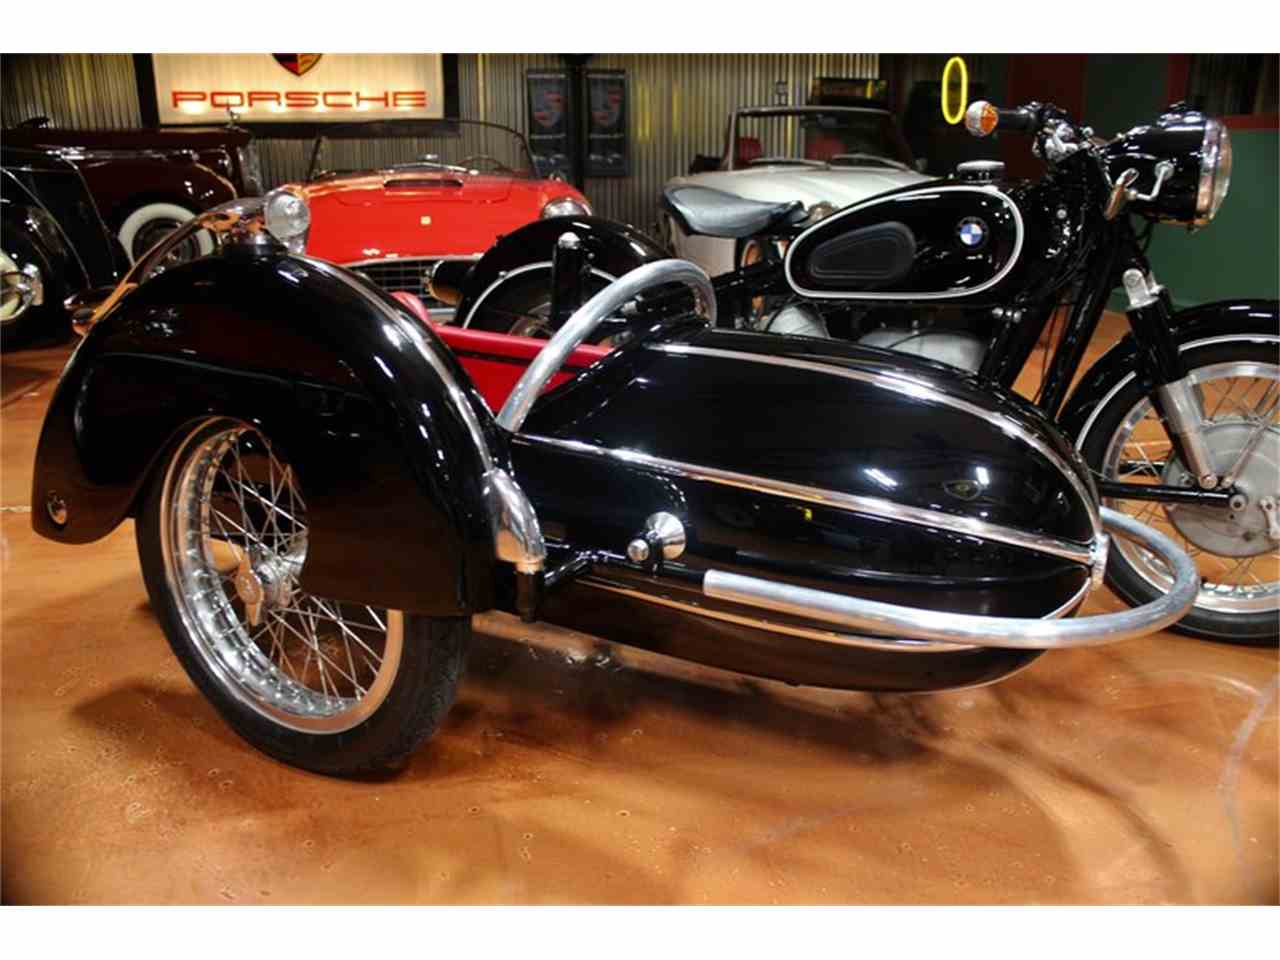 Large Picture of '65 R60 located in Phoenix Arizona Auction Vehicle Offered by EMG - JP7V